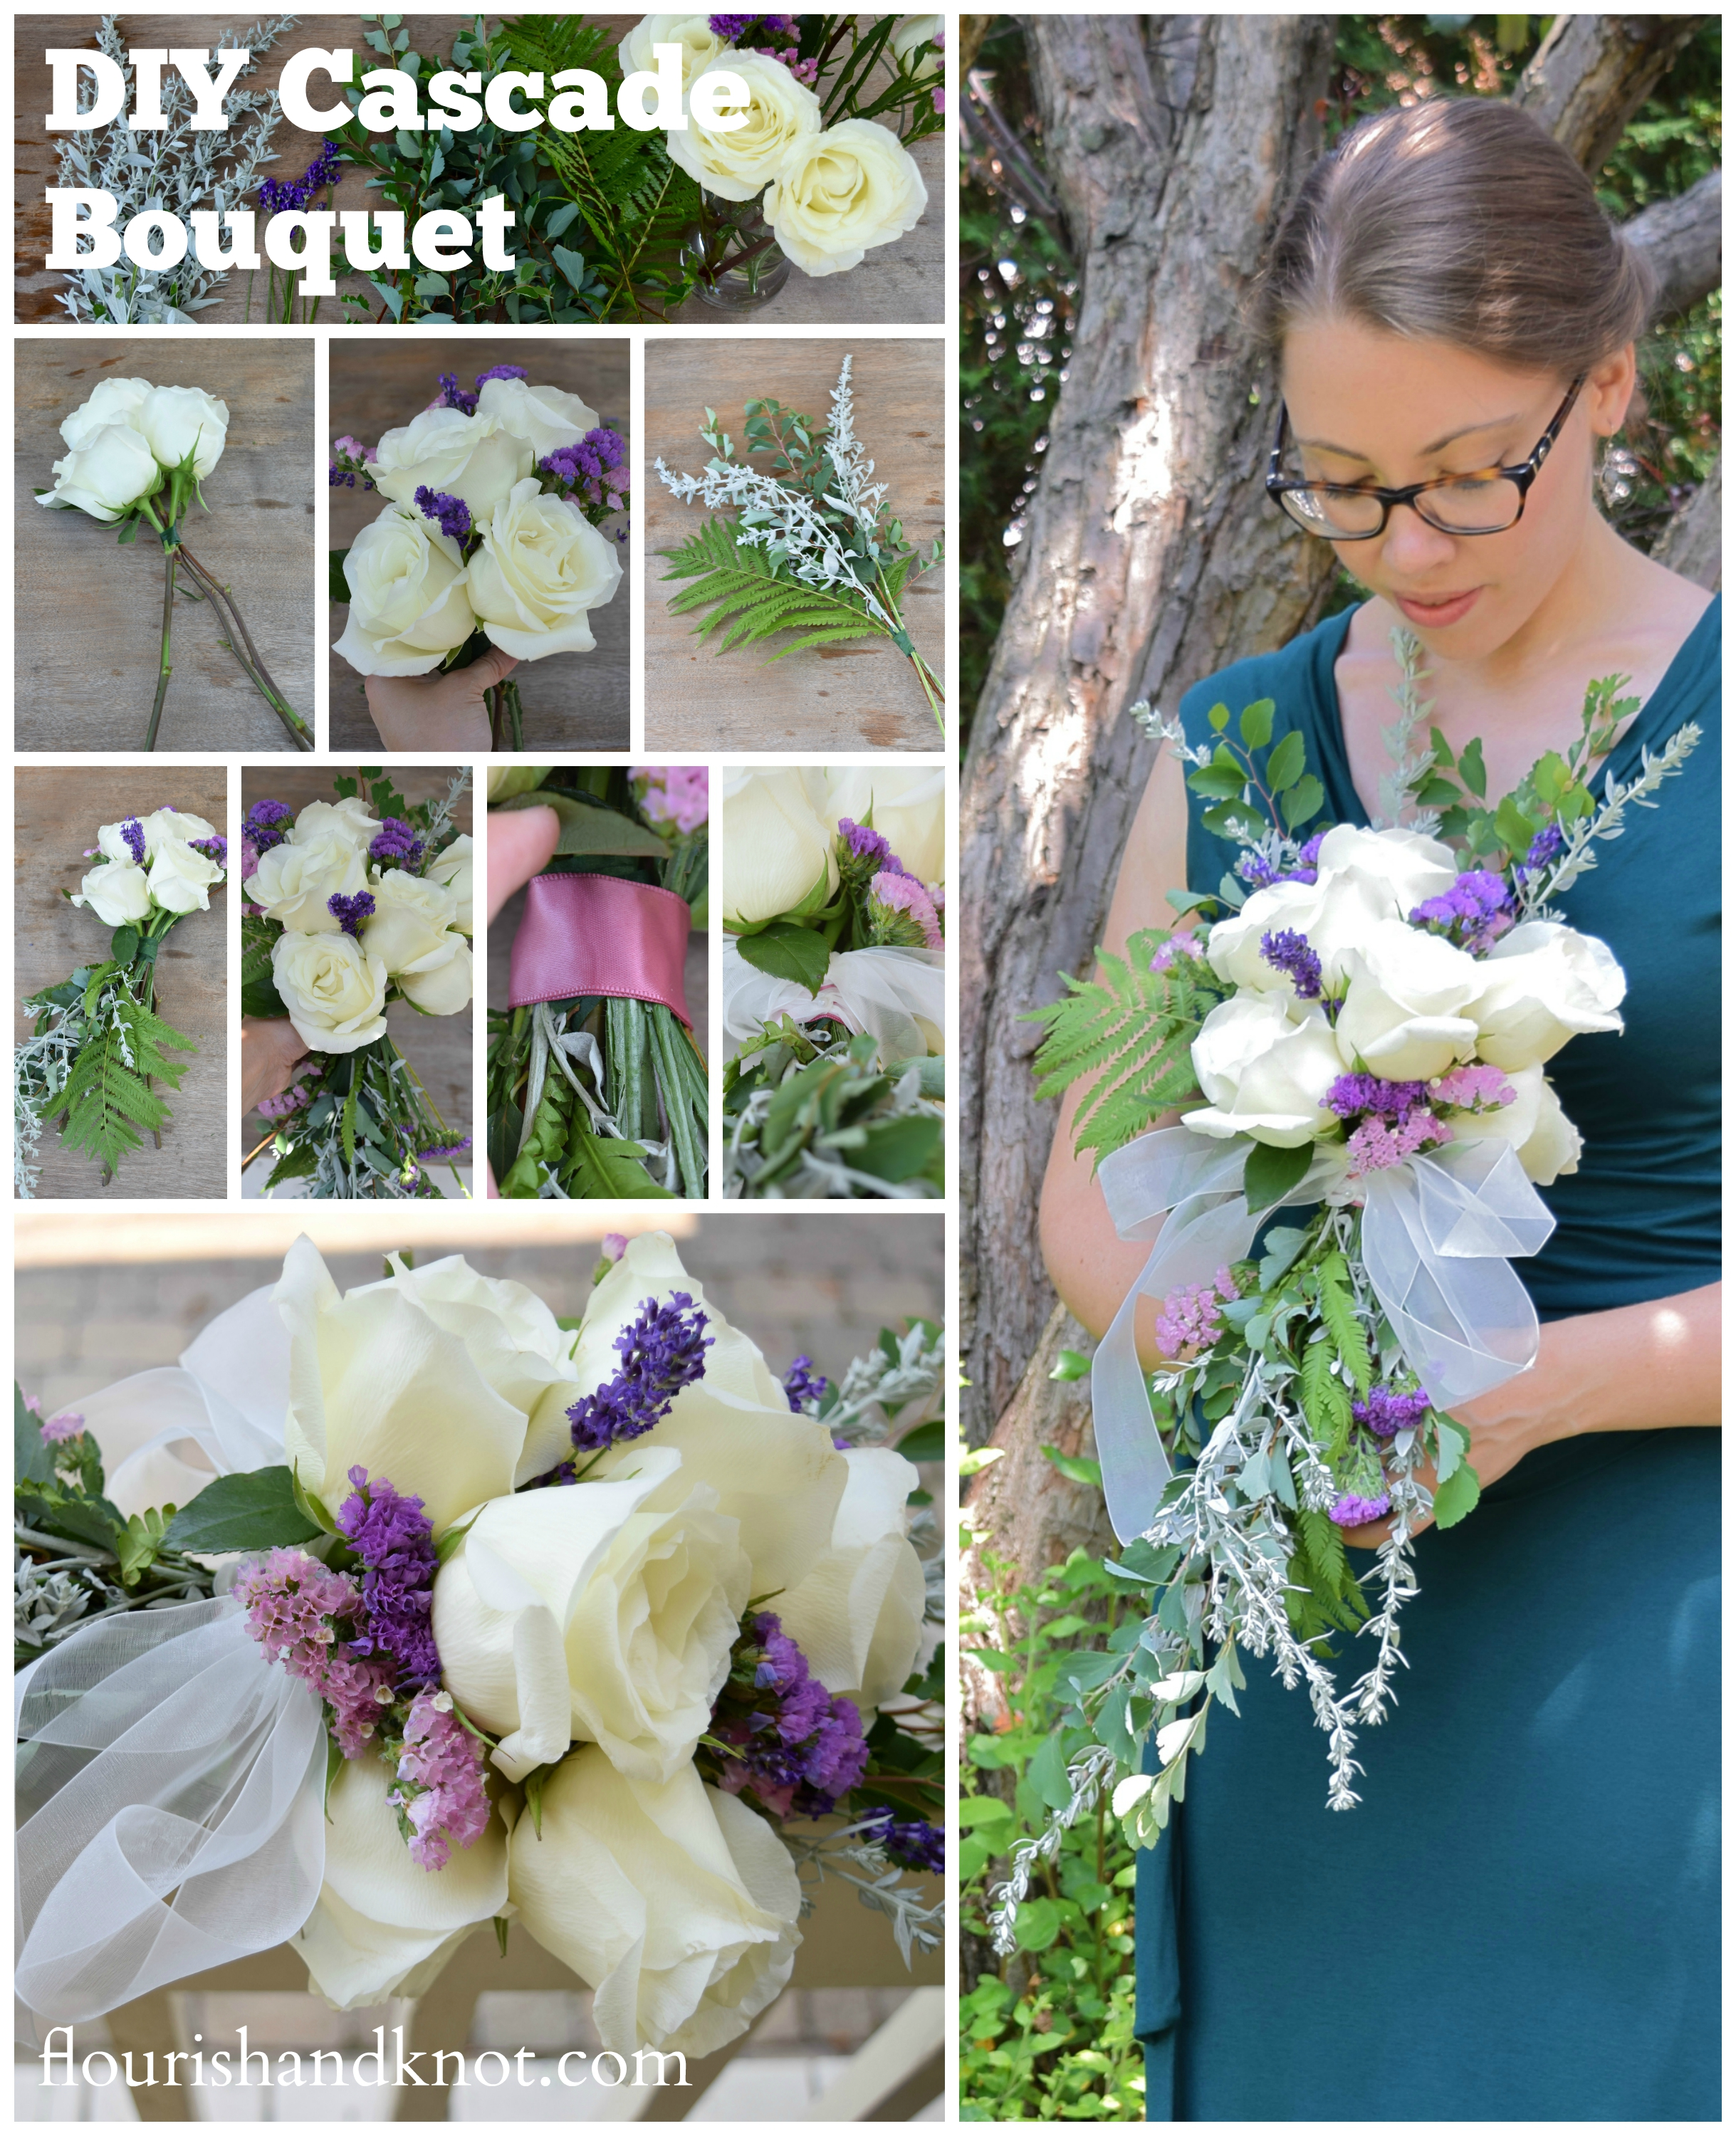 How to create a cascade bouquet